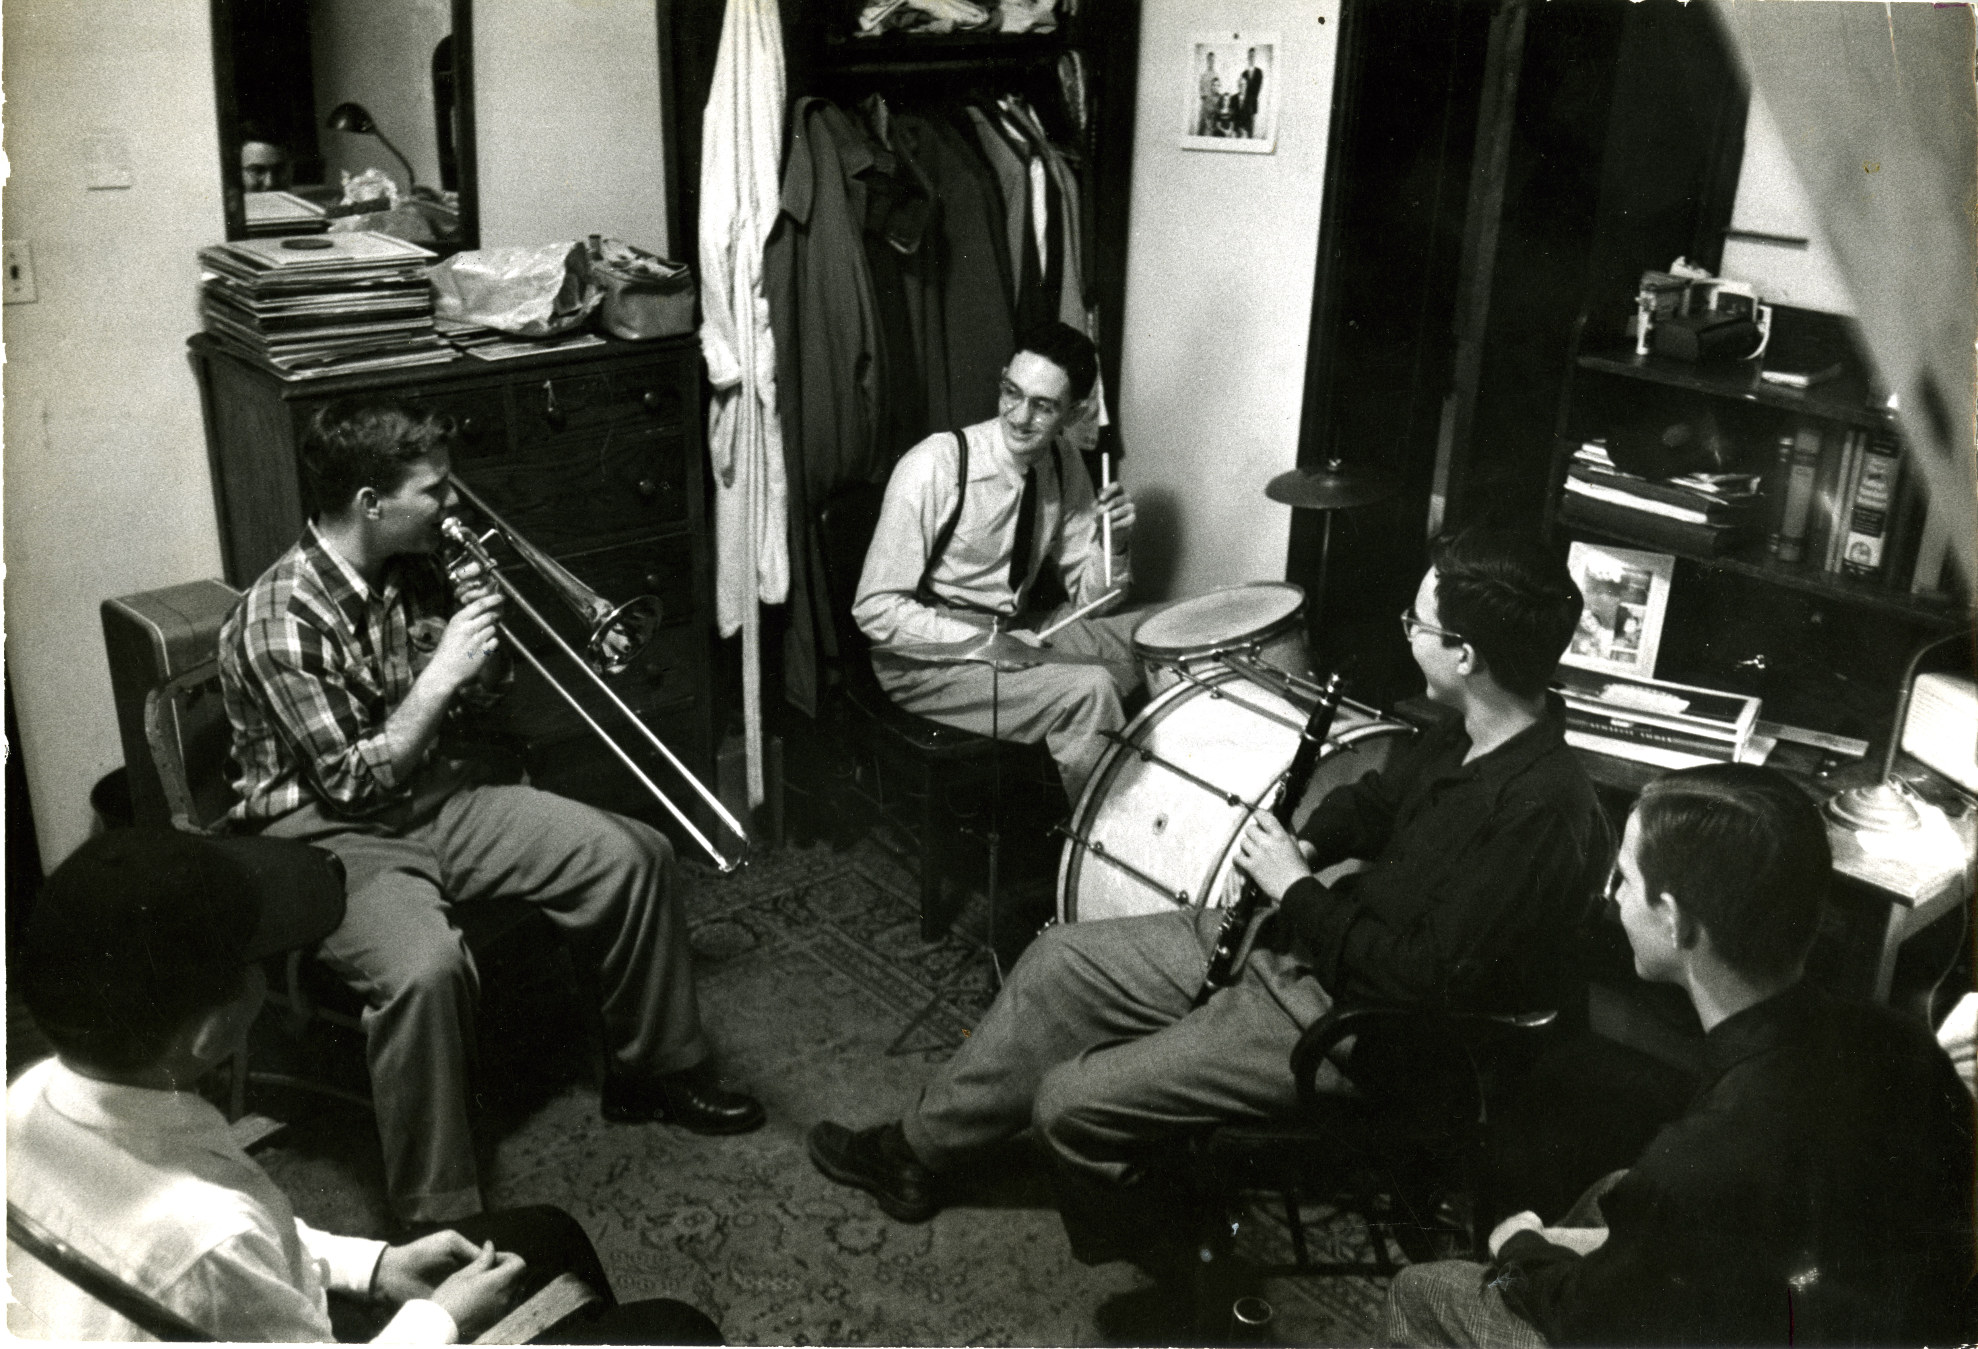 Jam session in dorm room